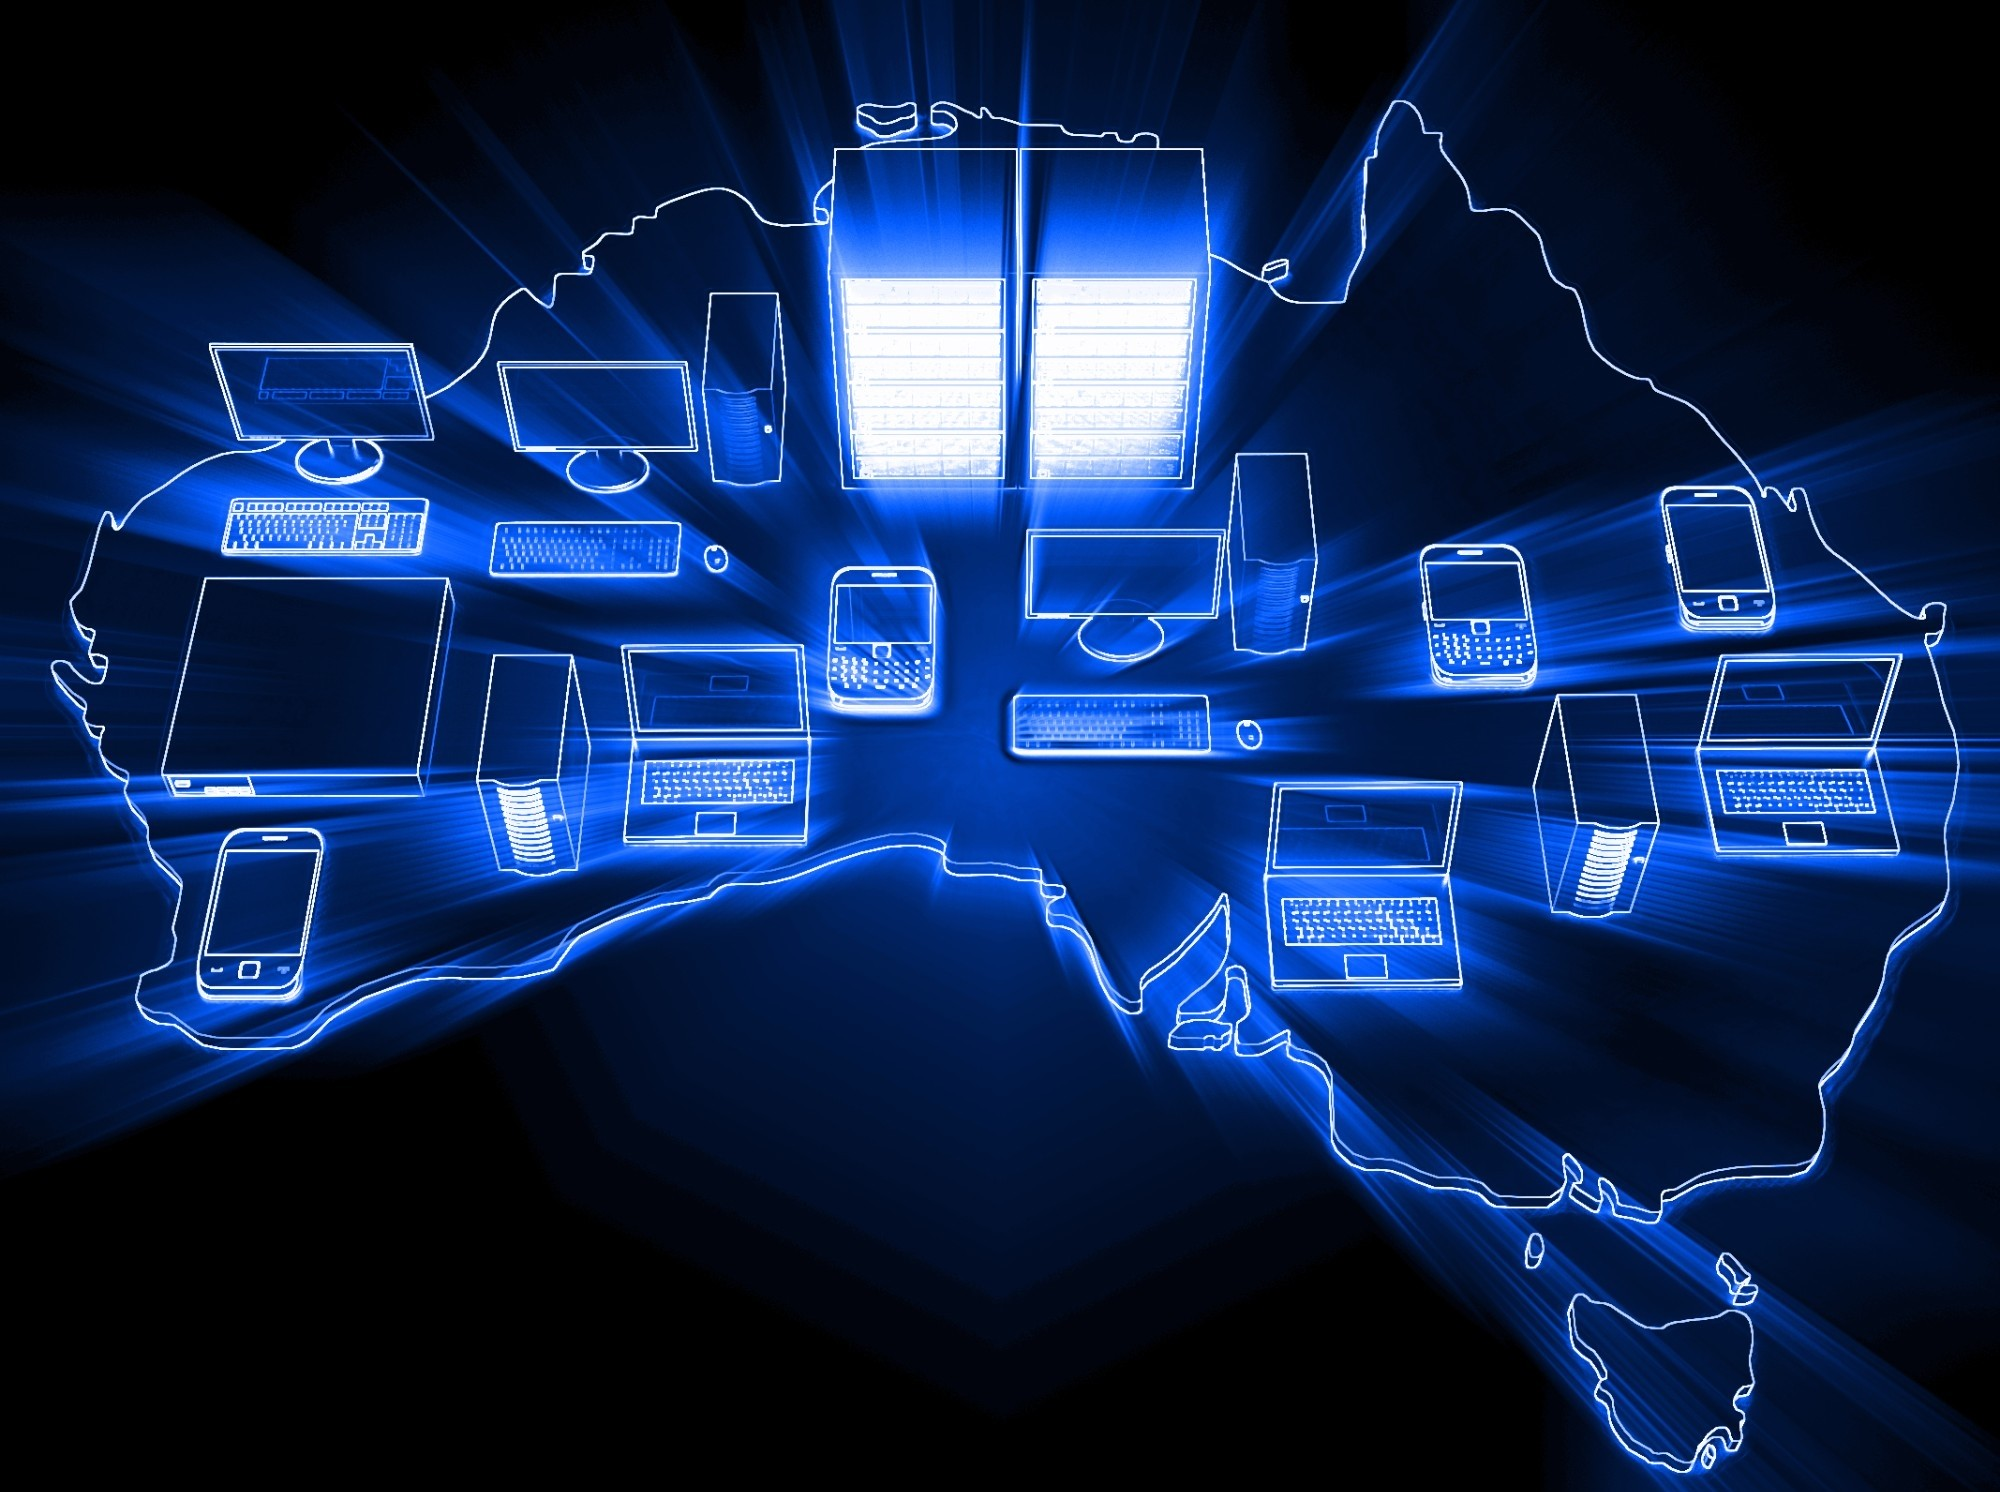 Digital devices on a map of Australia